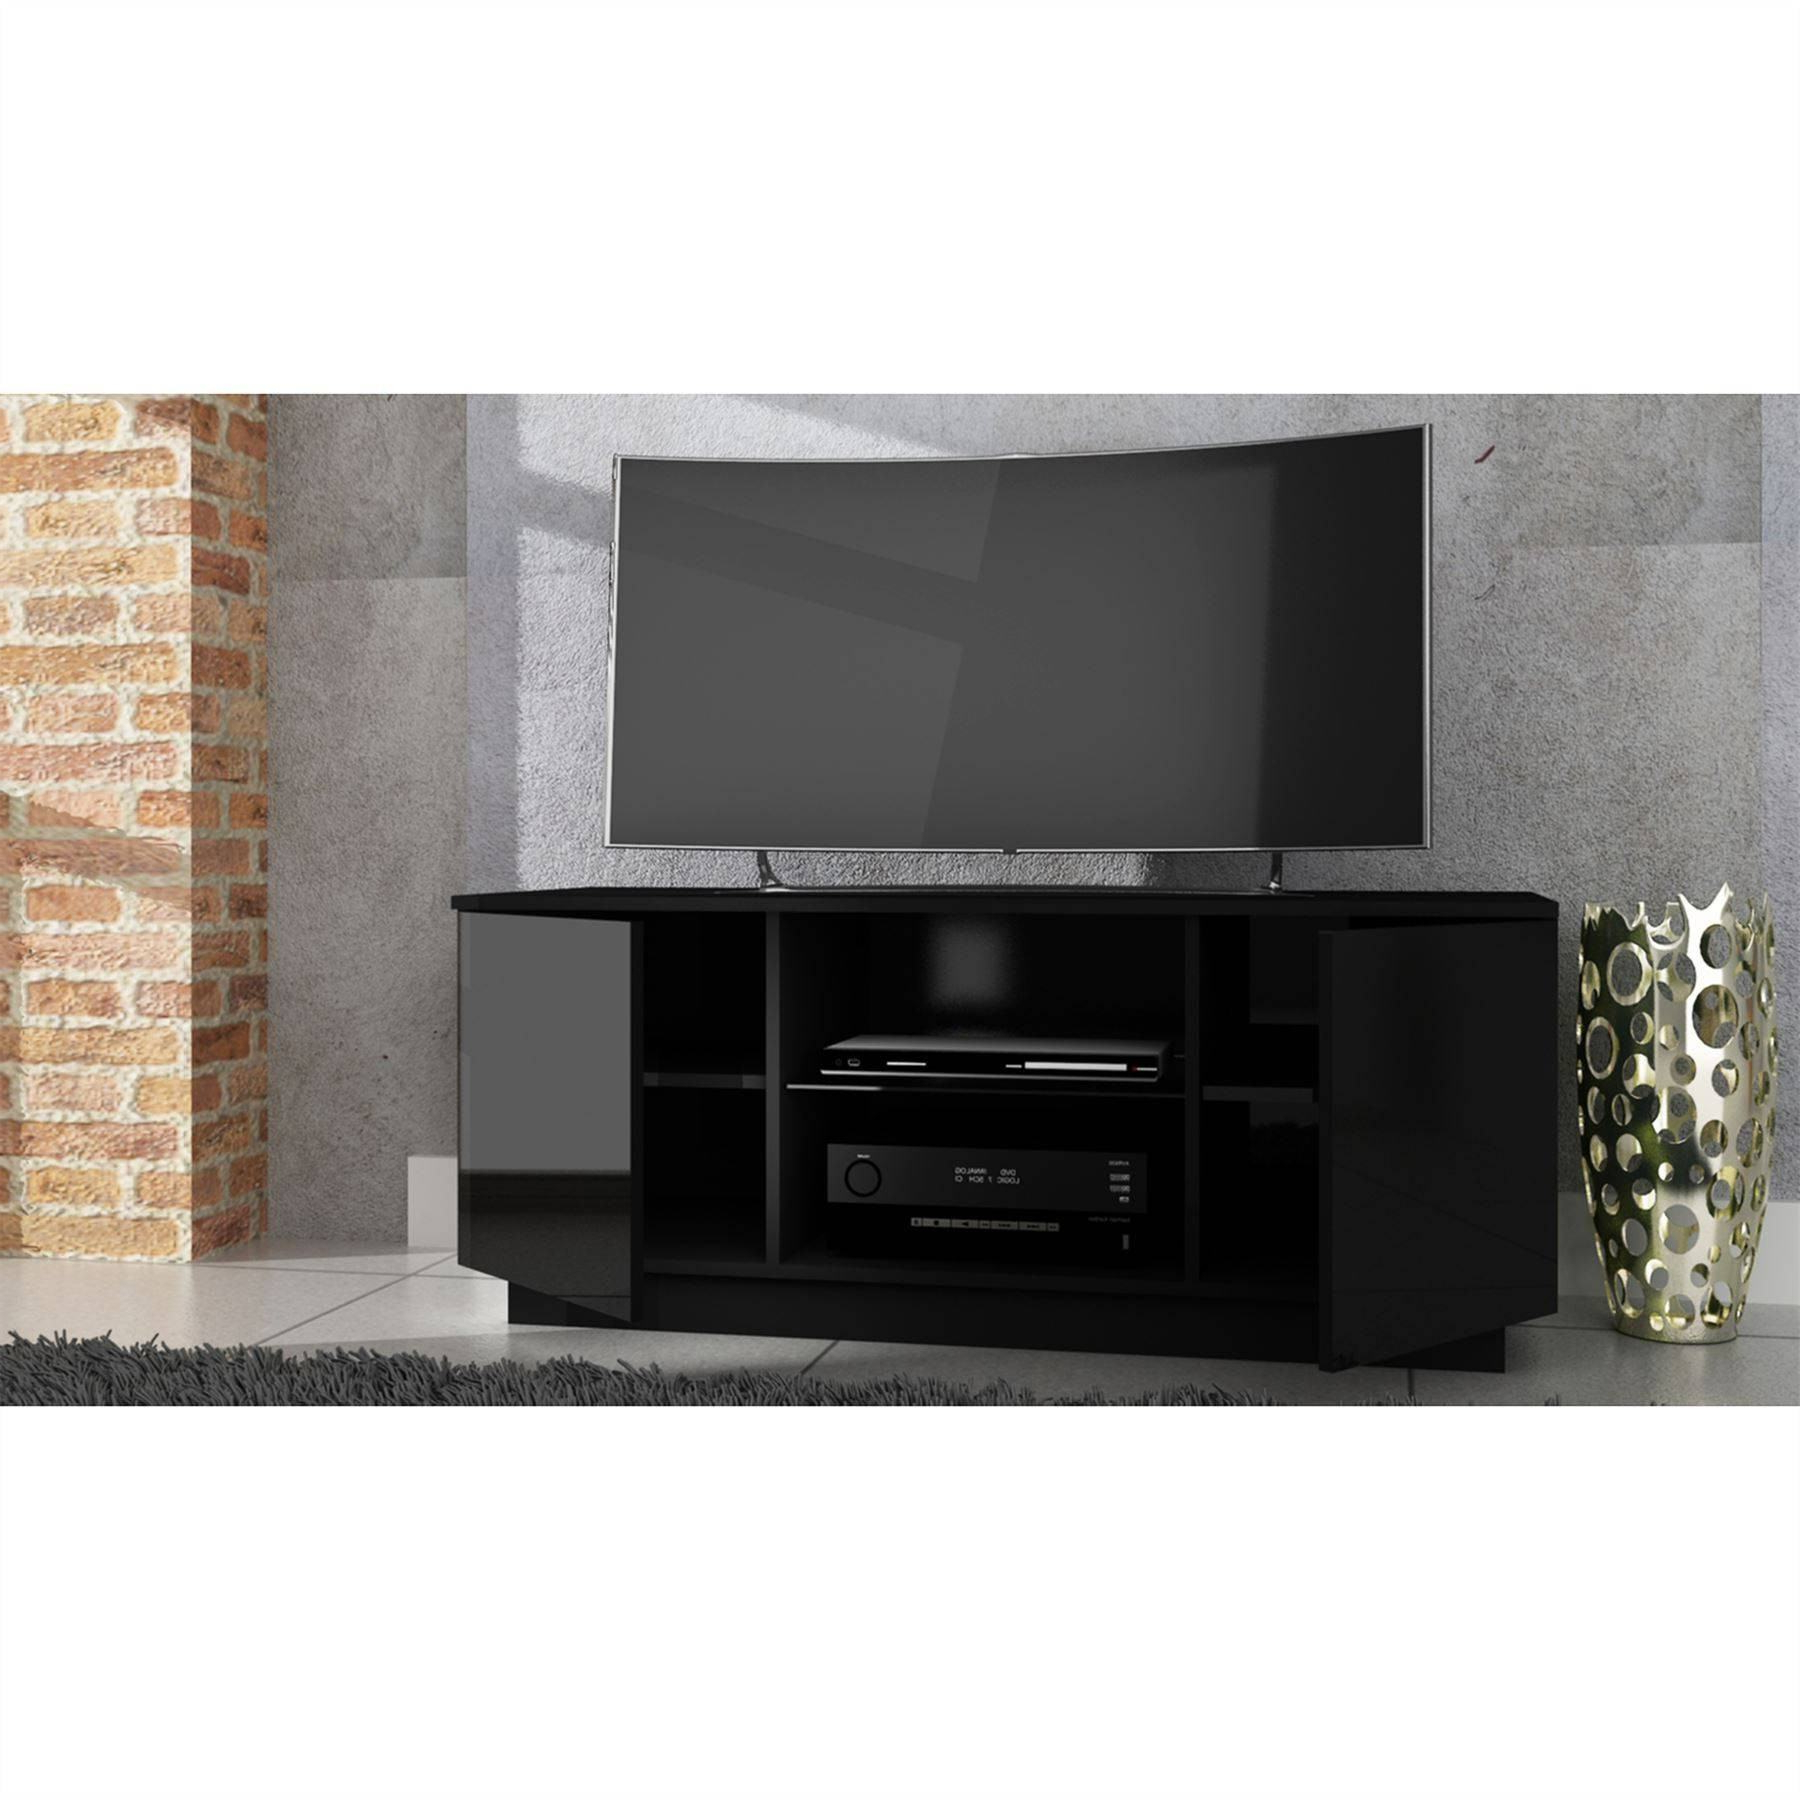 Current Wonderful Best 15 Of Black High Gloss Corner Tv Unit Elevated Tv Within Black Gloss Corner Tv Stand (View 10 of 20)